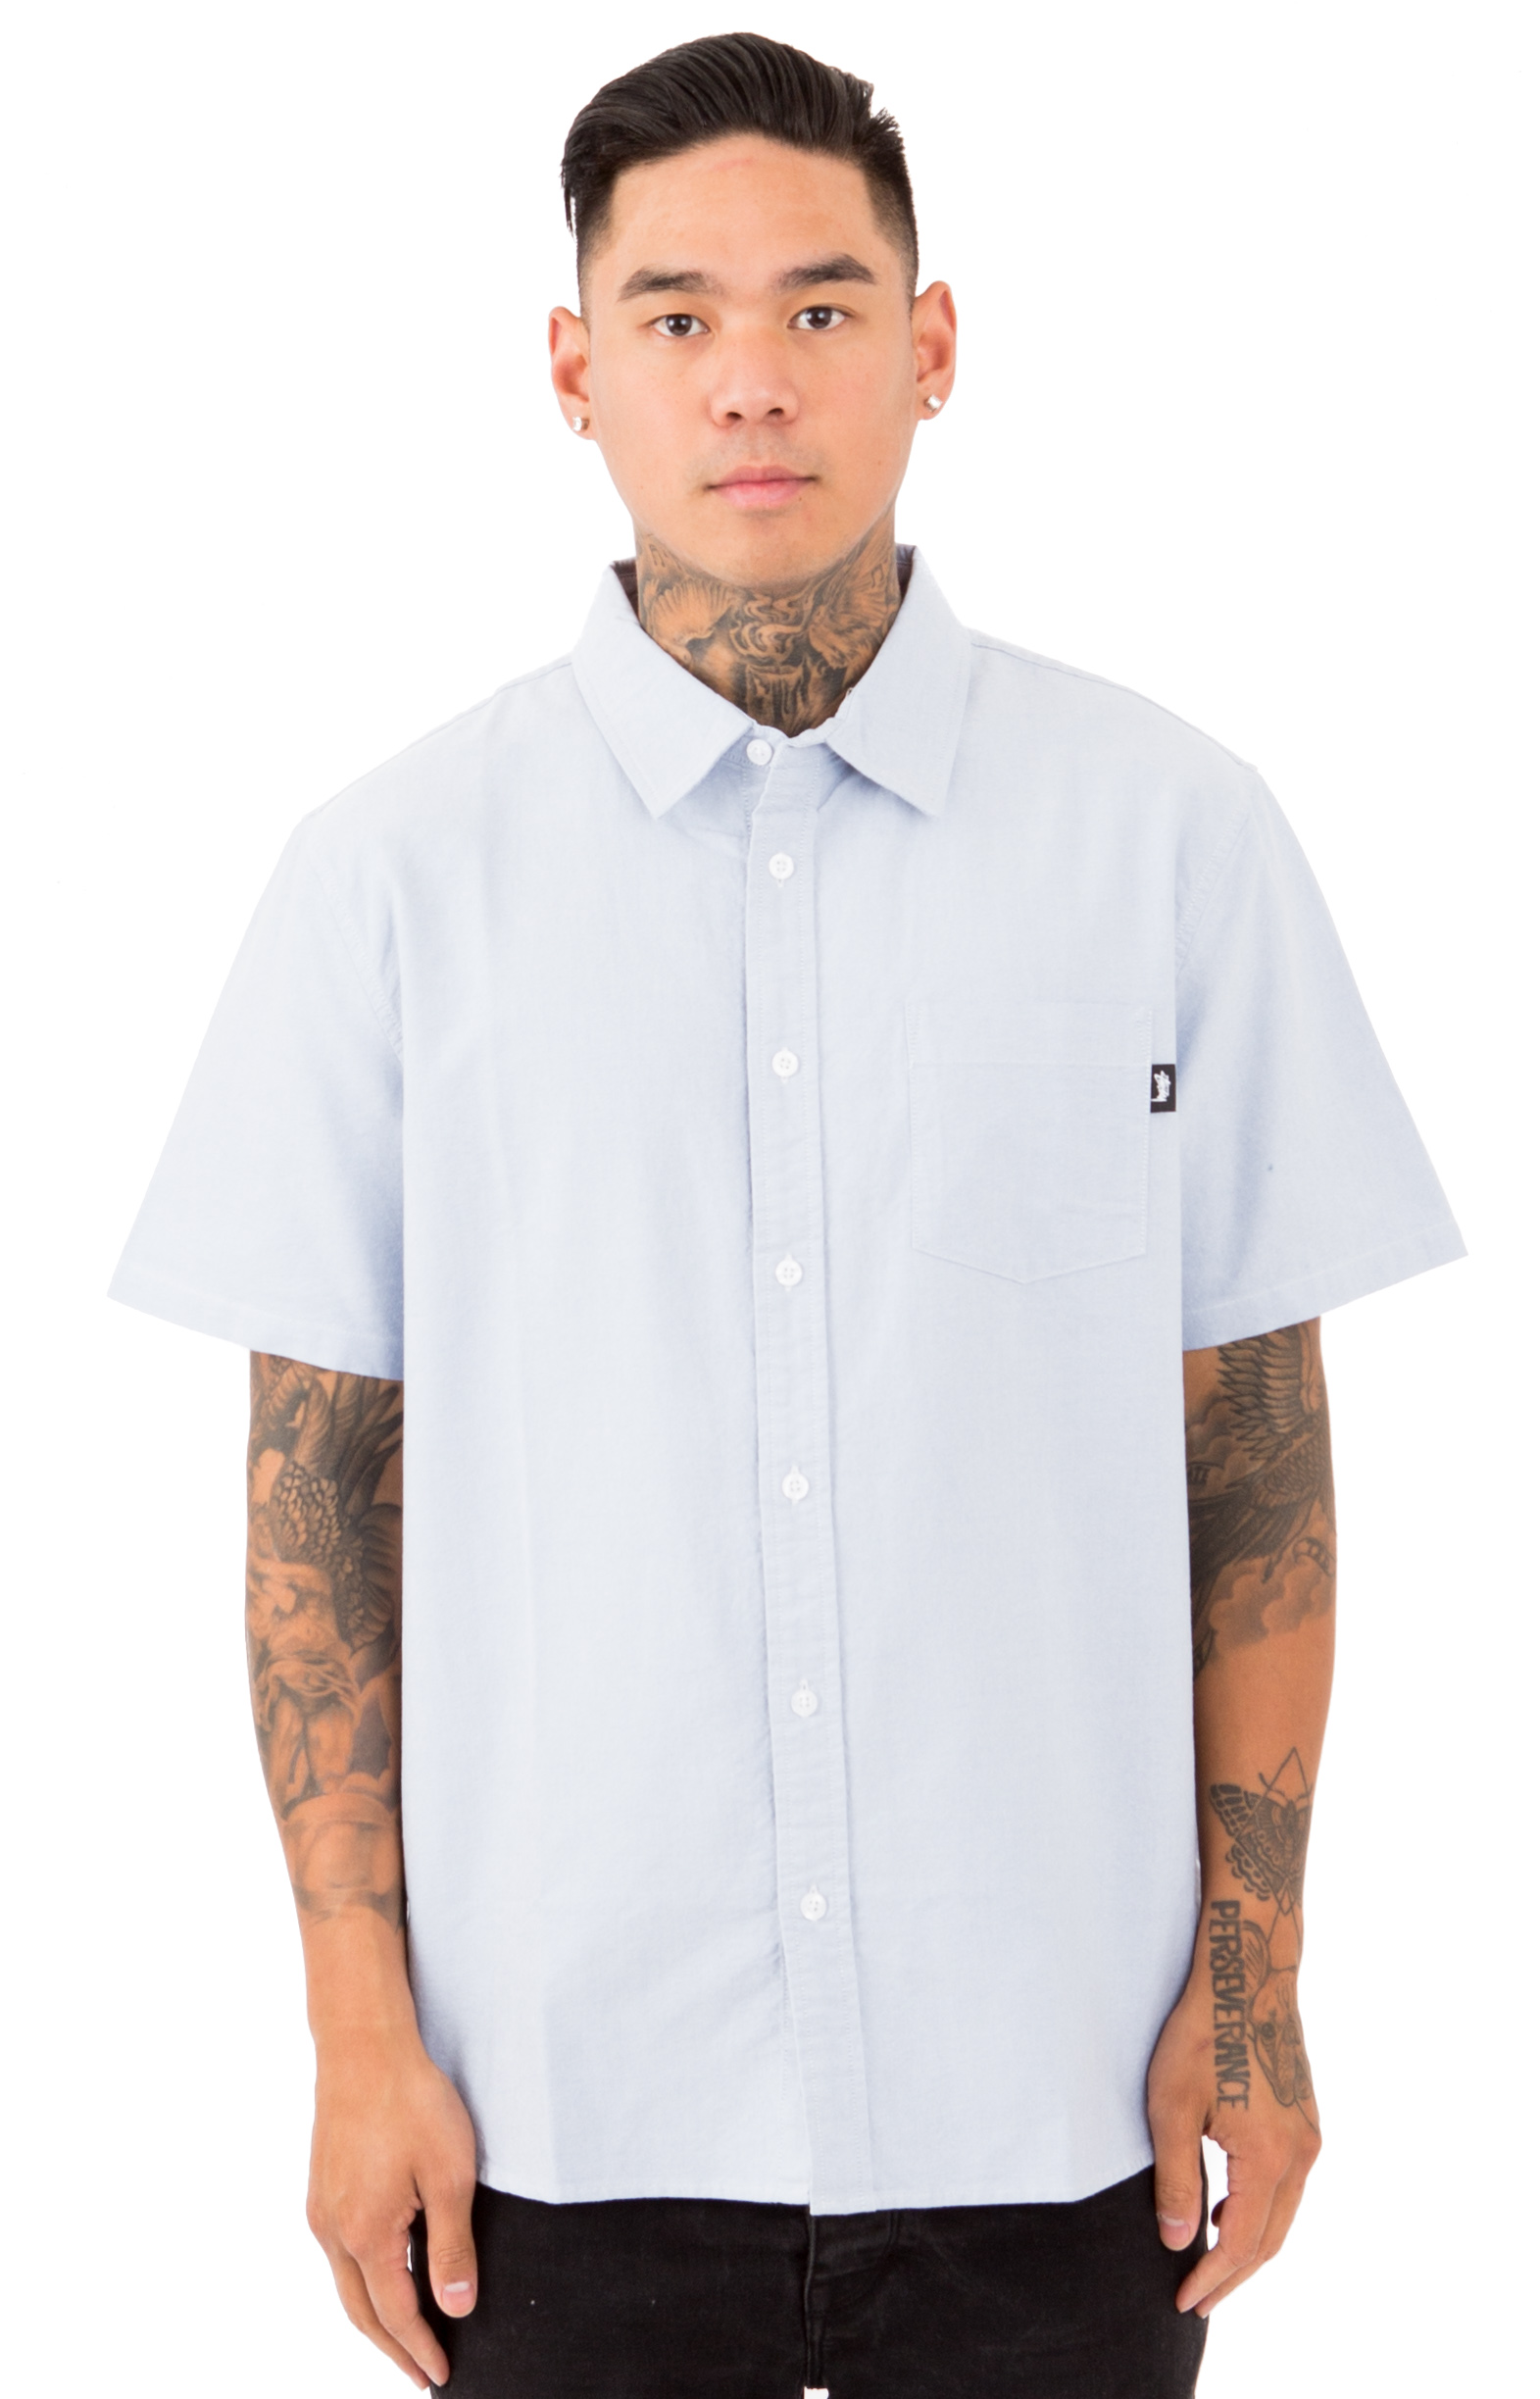 Frank Oxford S/S Button-Up Shirt - Blue